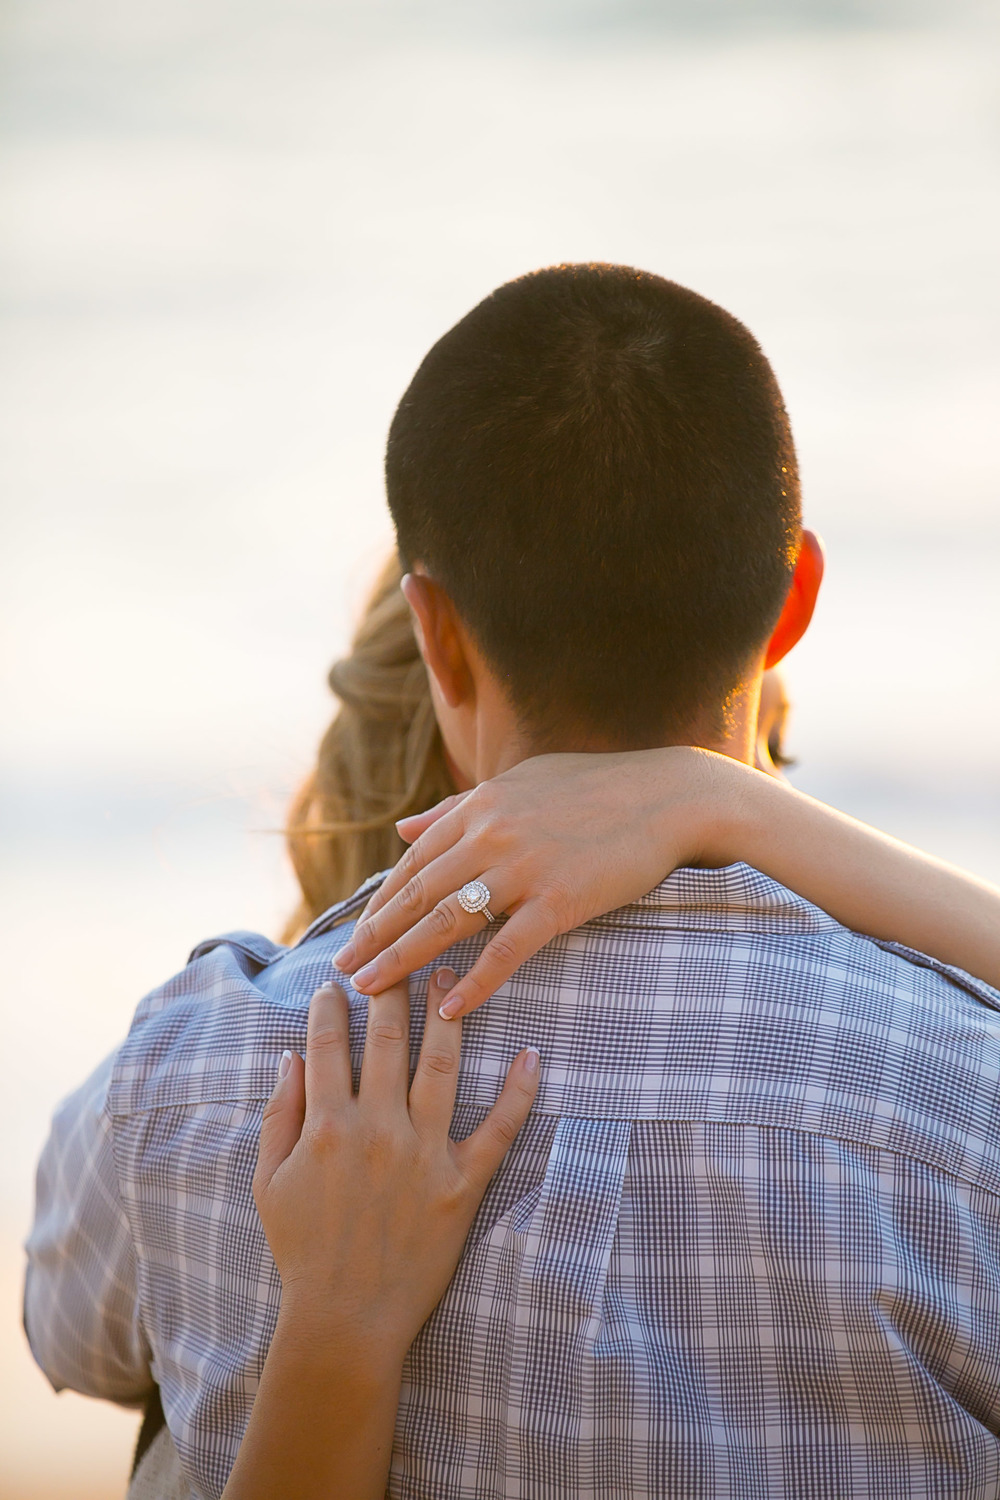 20131020_CHRIS_JEFF_MALIBU_BEACH_ENGAGEMENT_CHRIS_HOLT_PHOTOGRAPHY_009.jpg